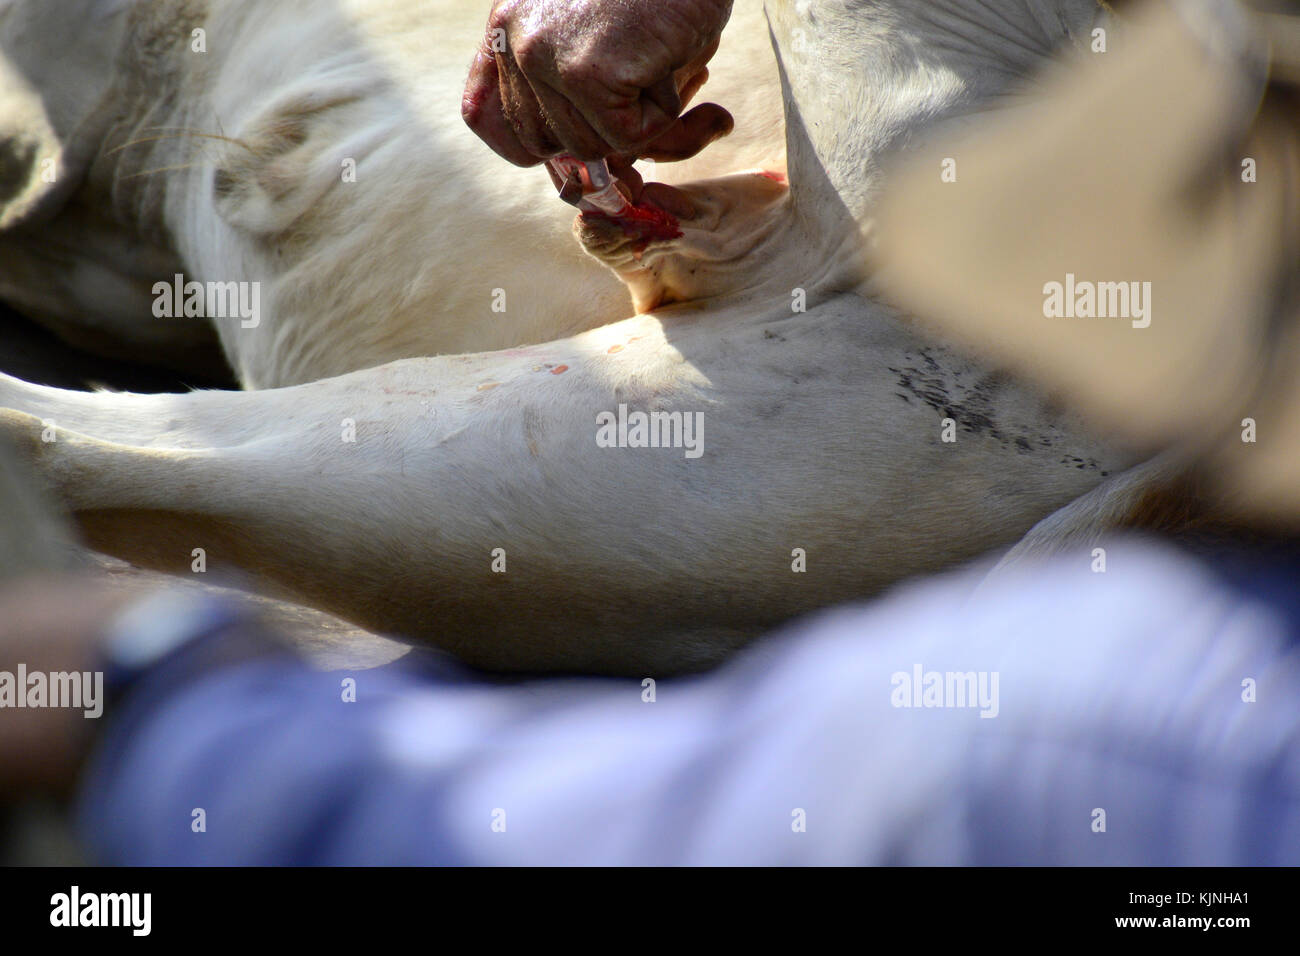 Castration Stock Photos Amp Castration Stock Images Alamy